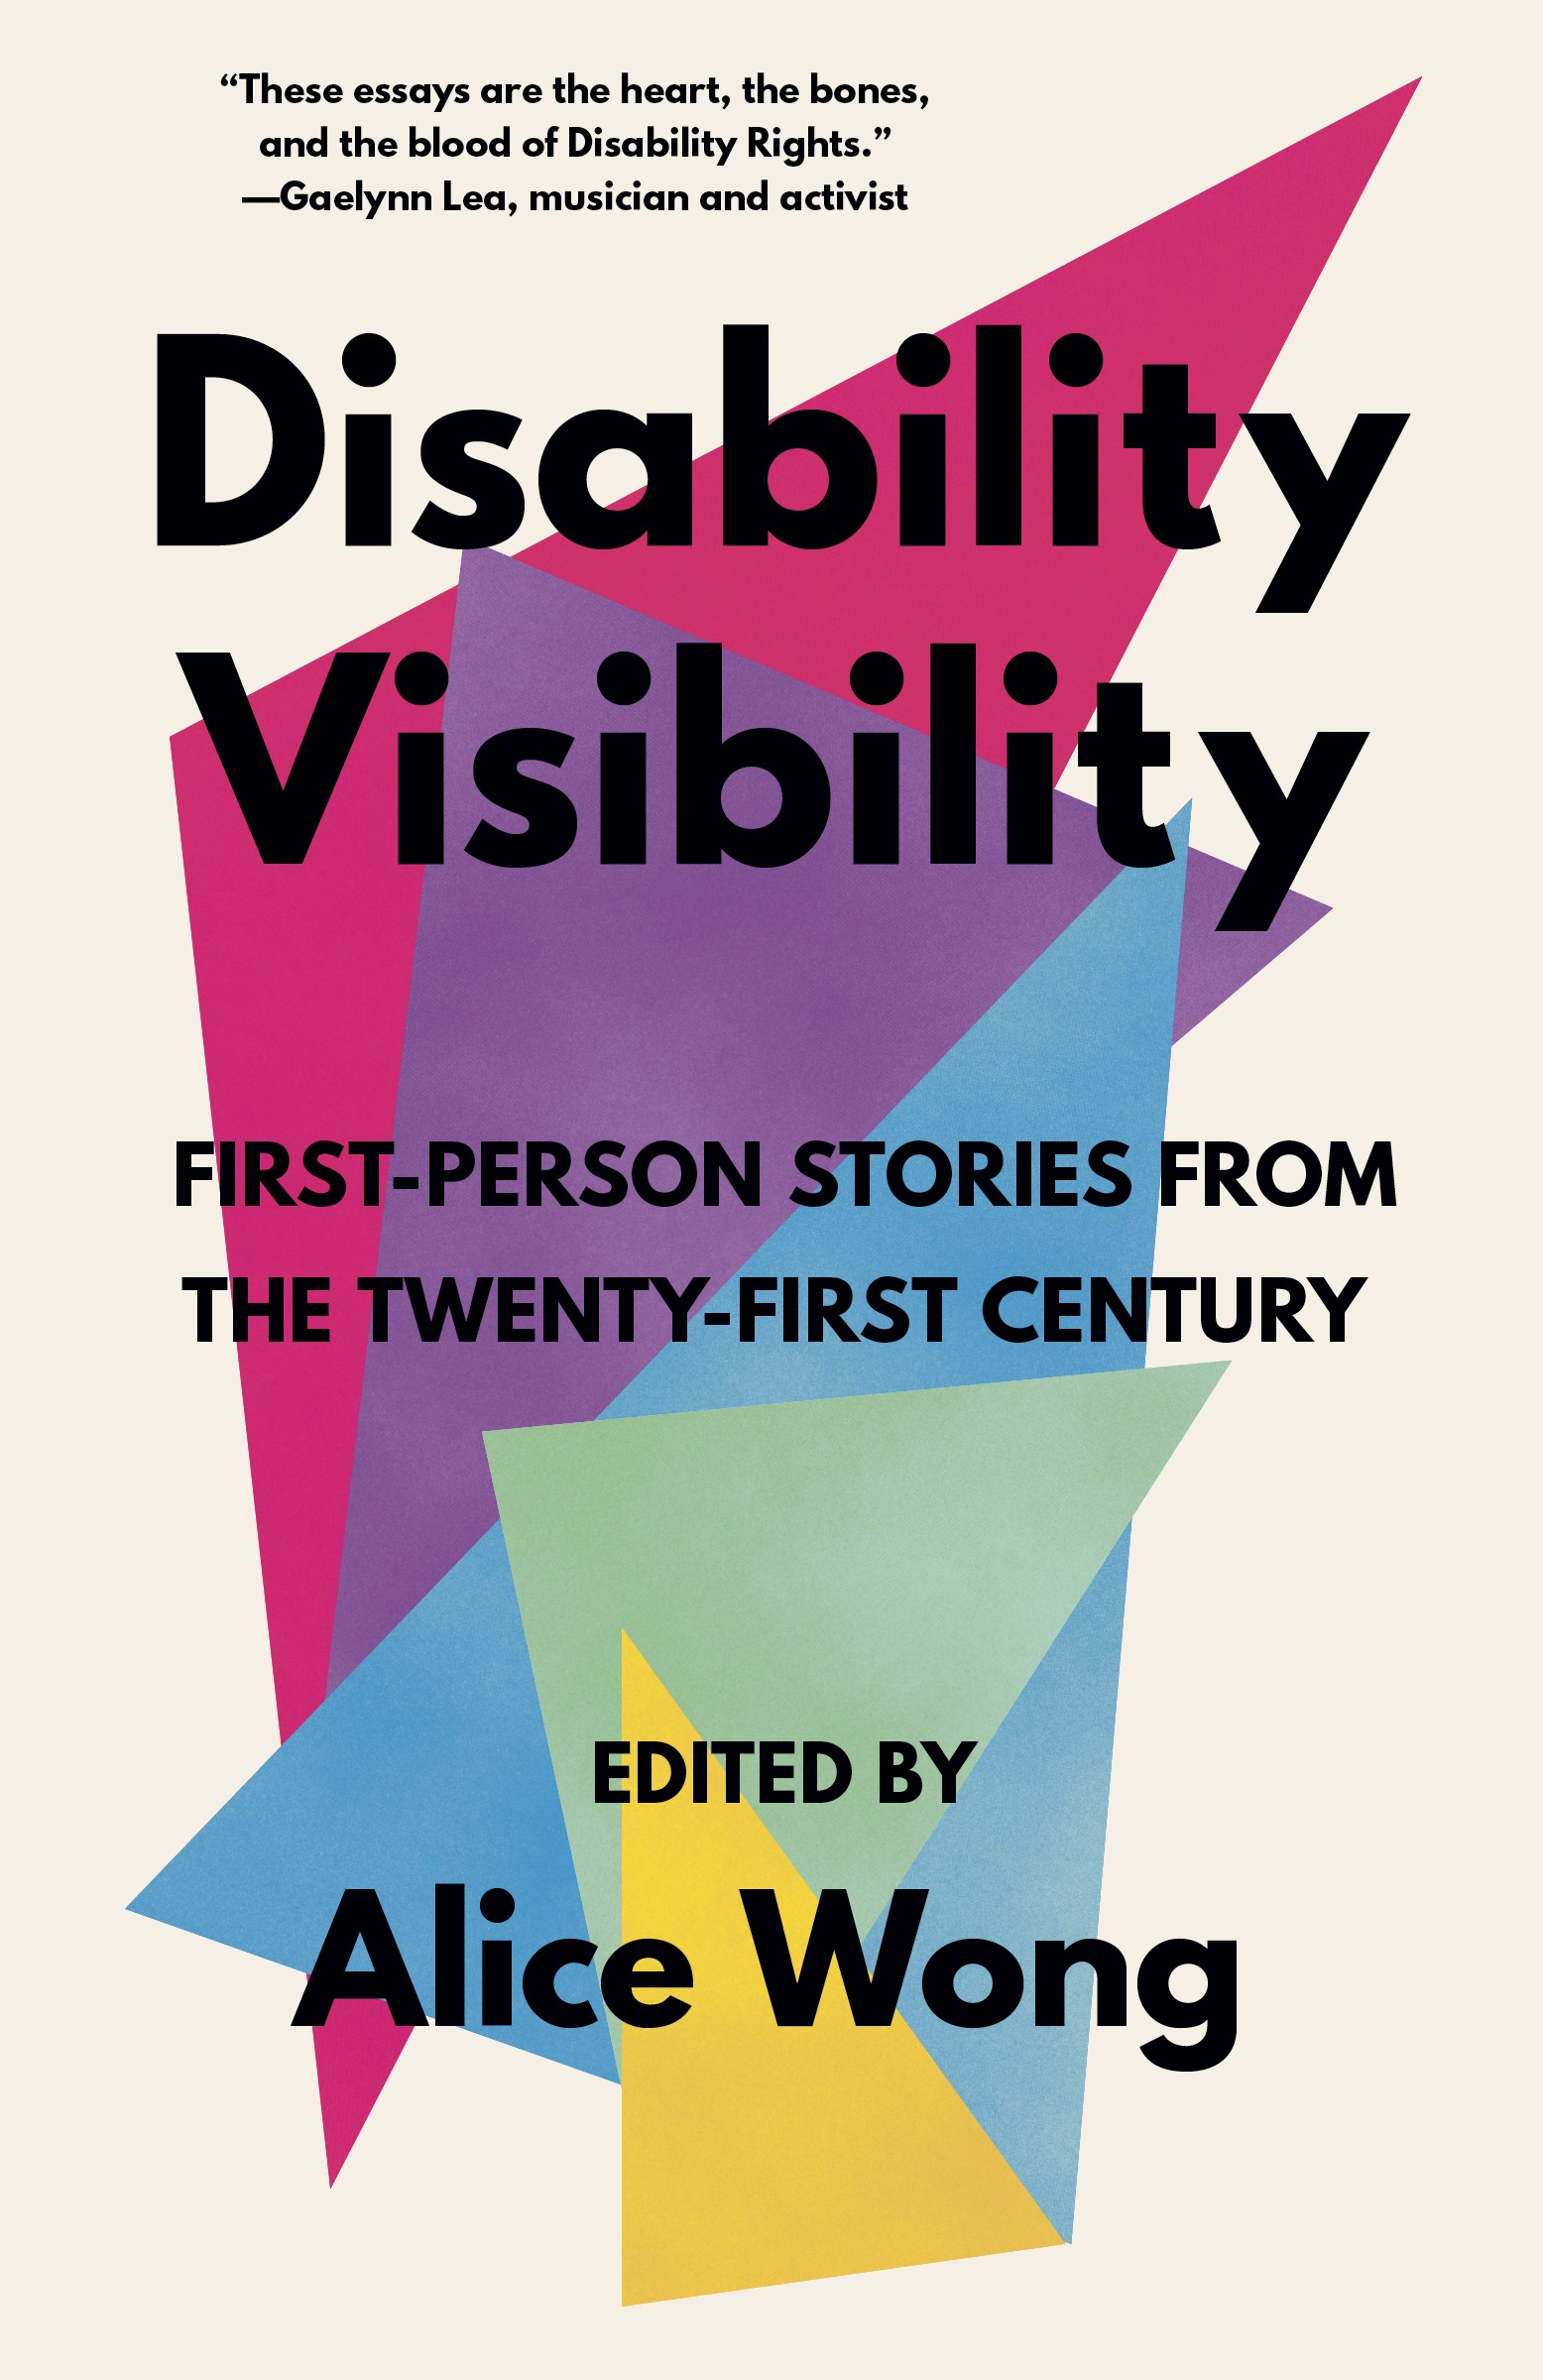 An image of the cover of the book Disability Visibility